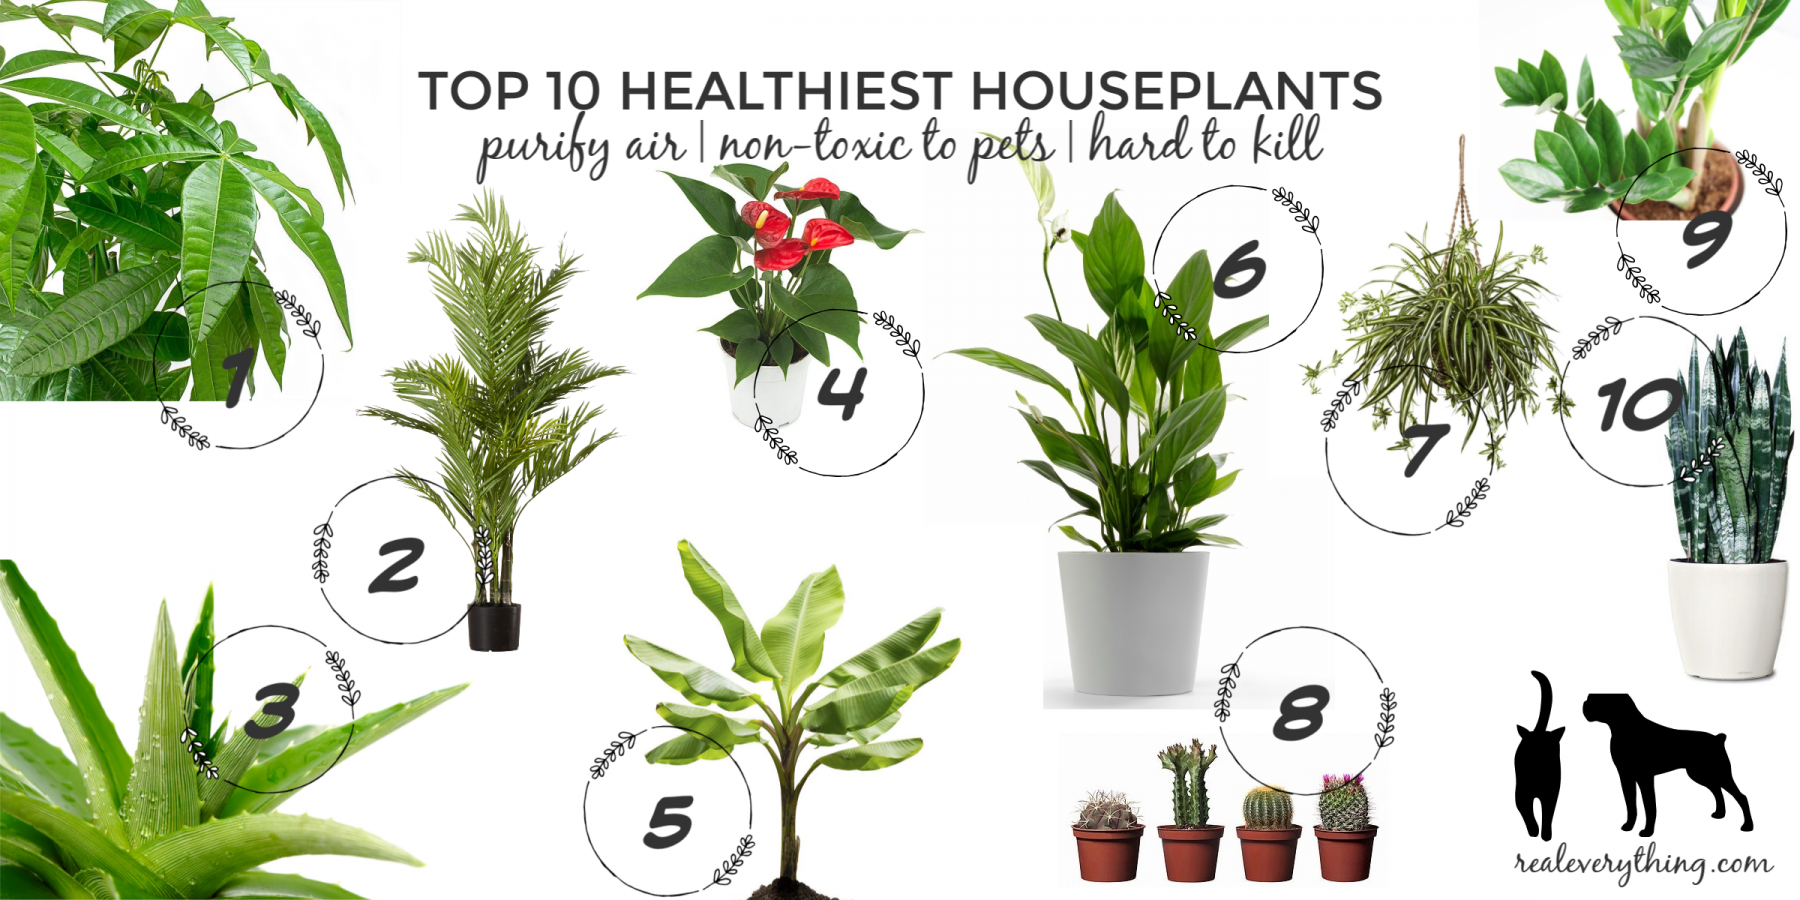 Top 10 Healthiest Houseplants Purify Air Non Toxic To Pets And Hard Kill